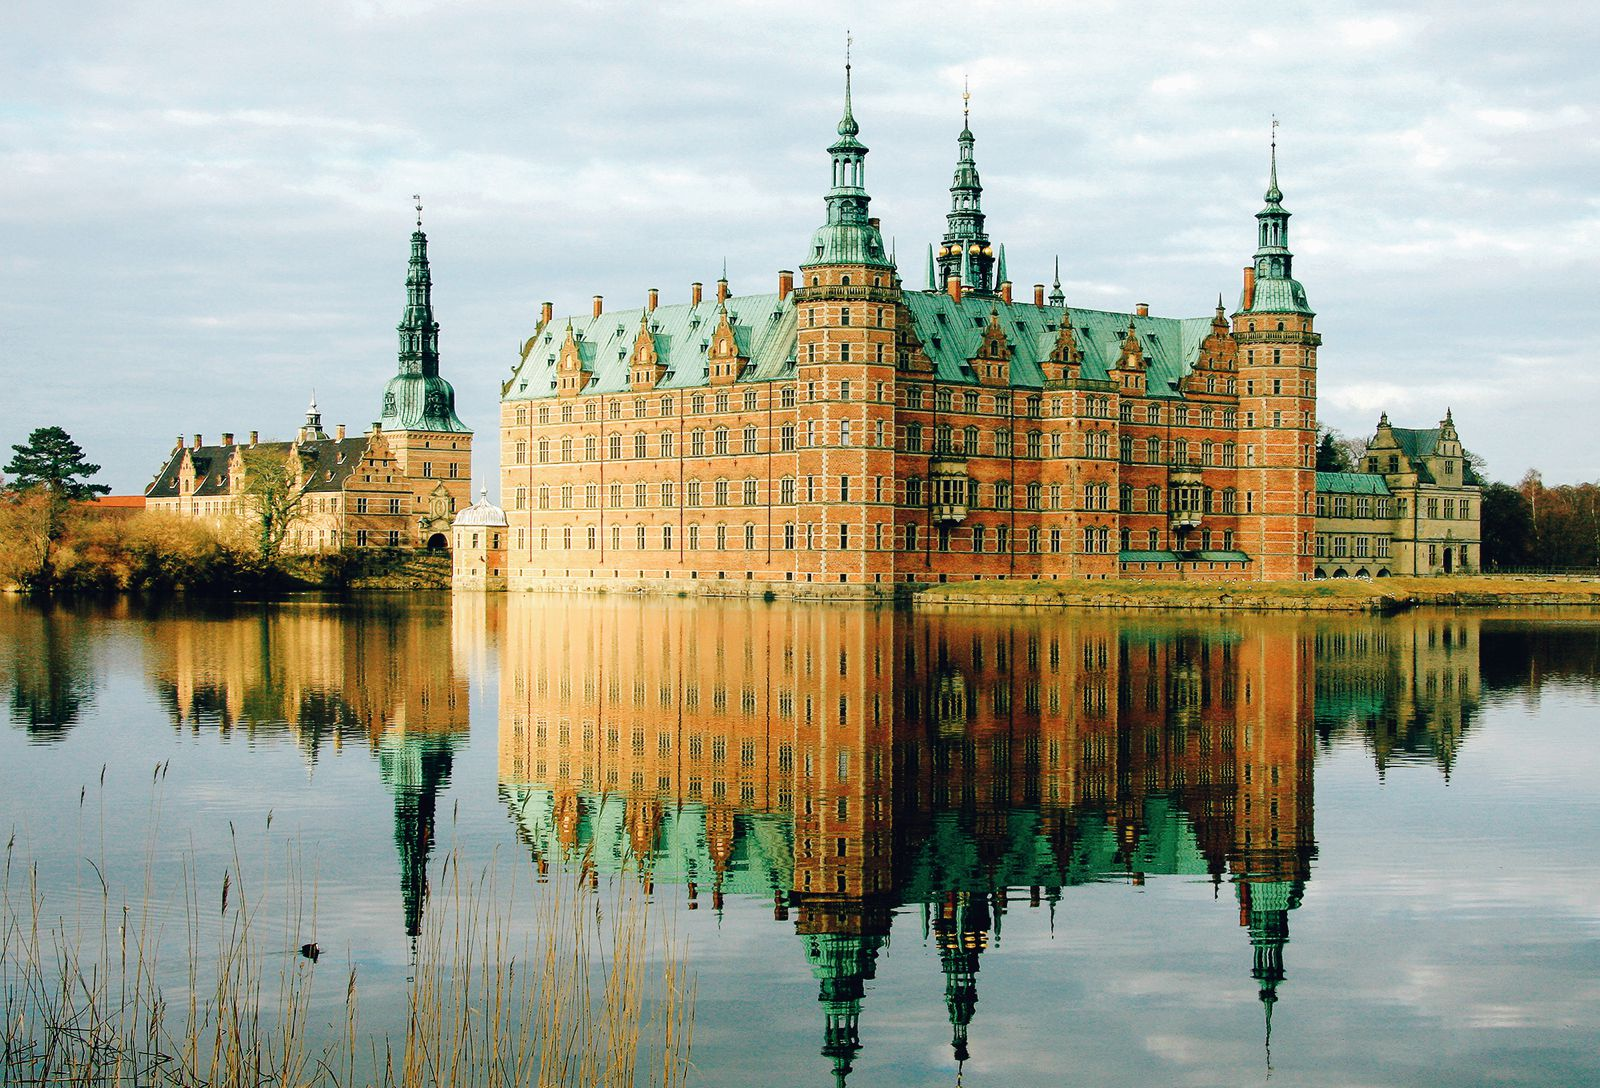 10 Fairytale Castles You Will Want To Visit In Denmark